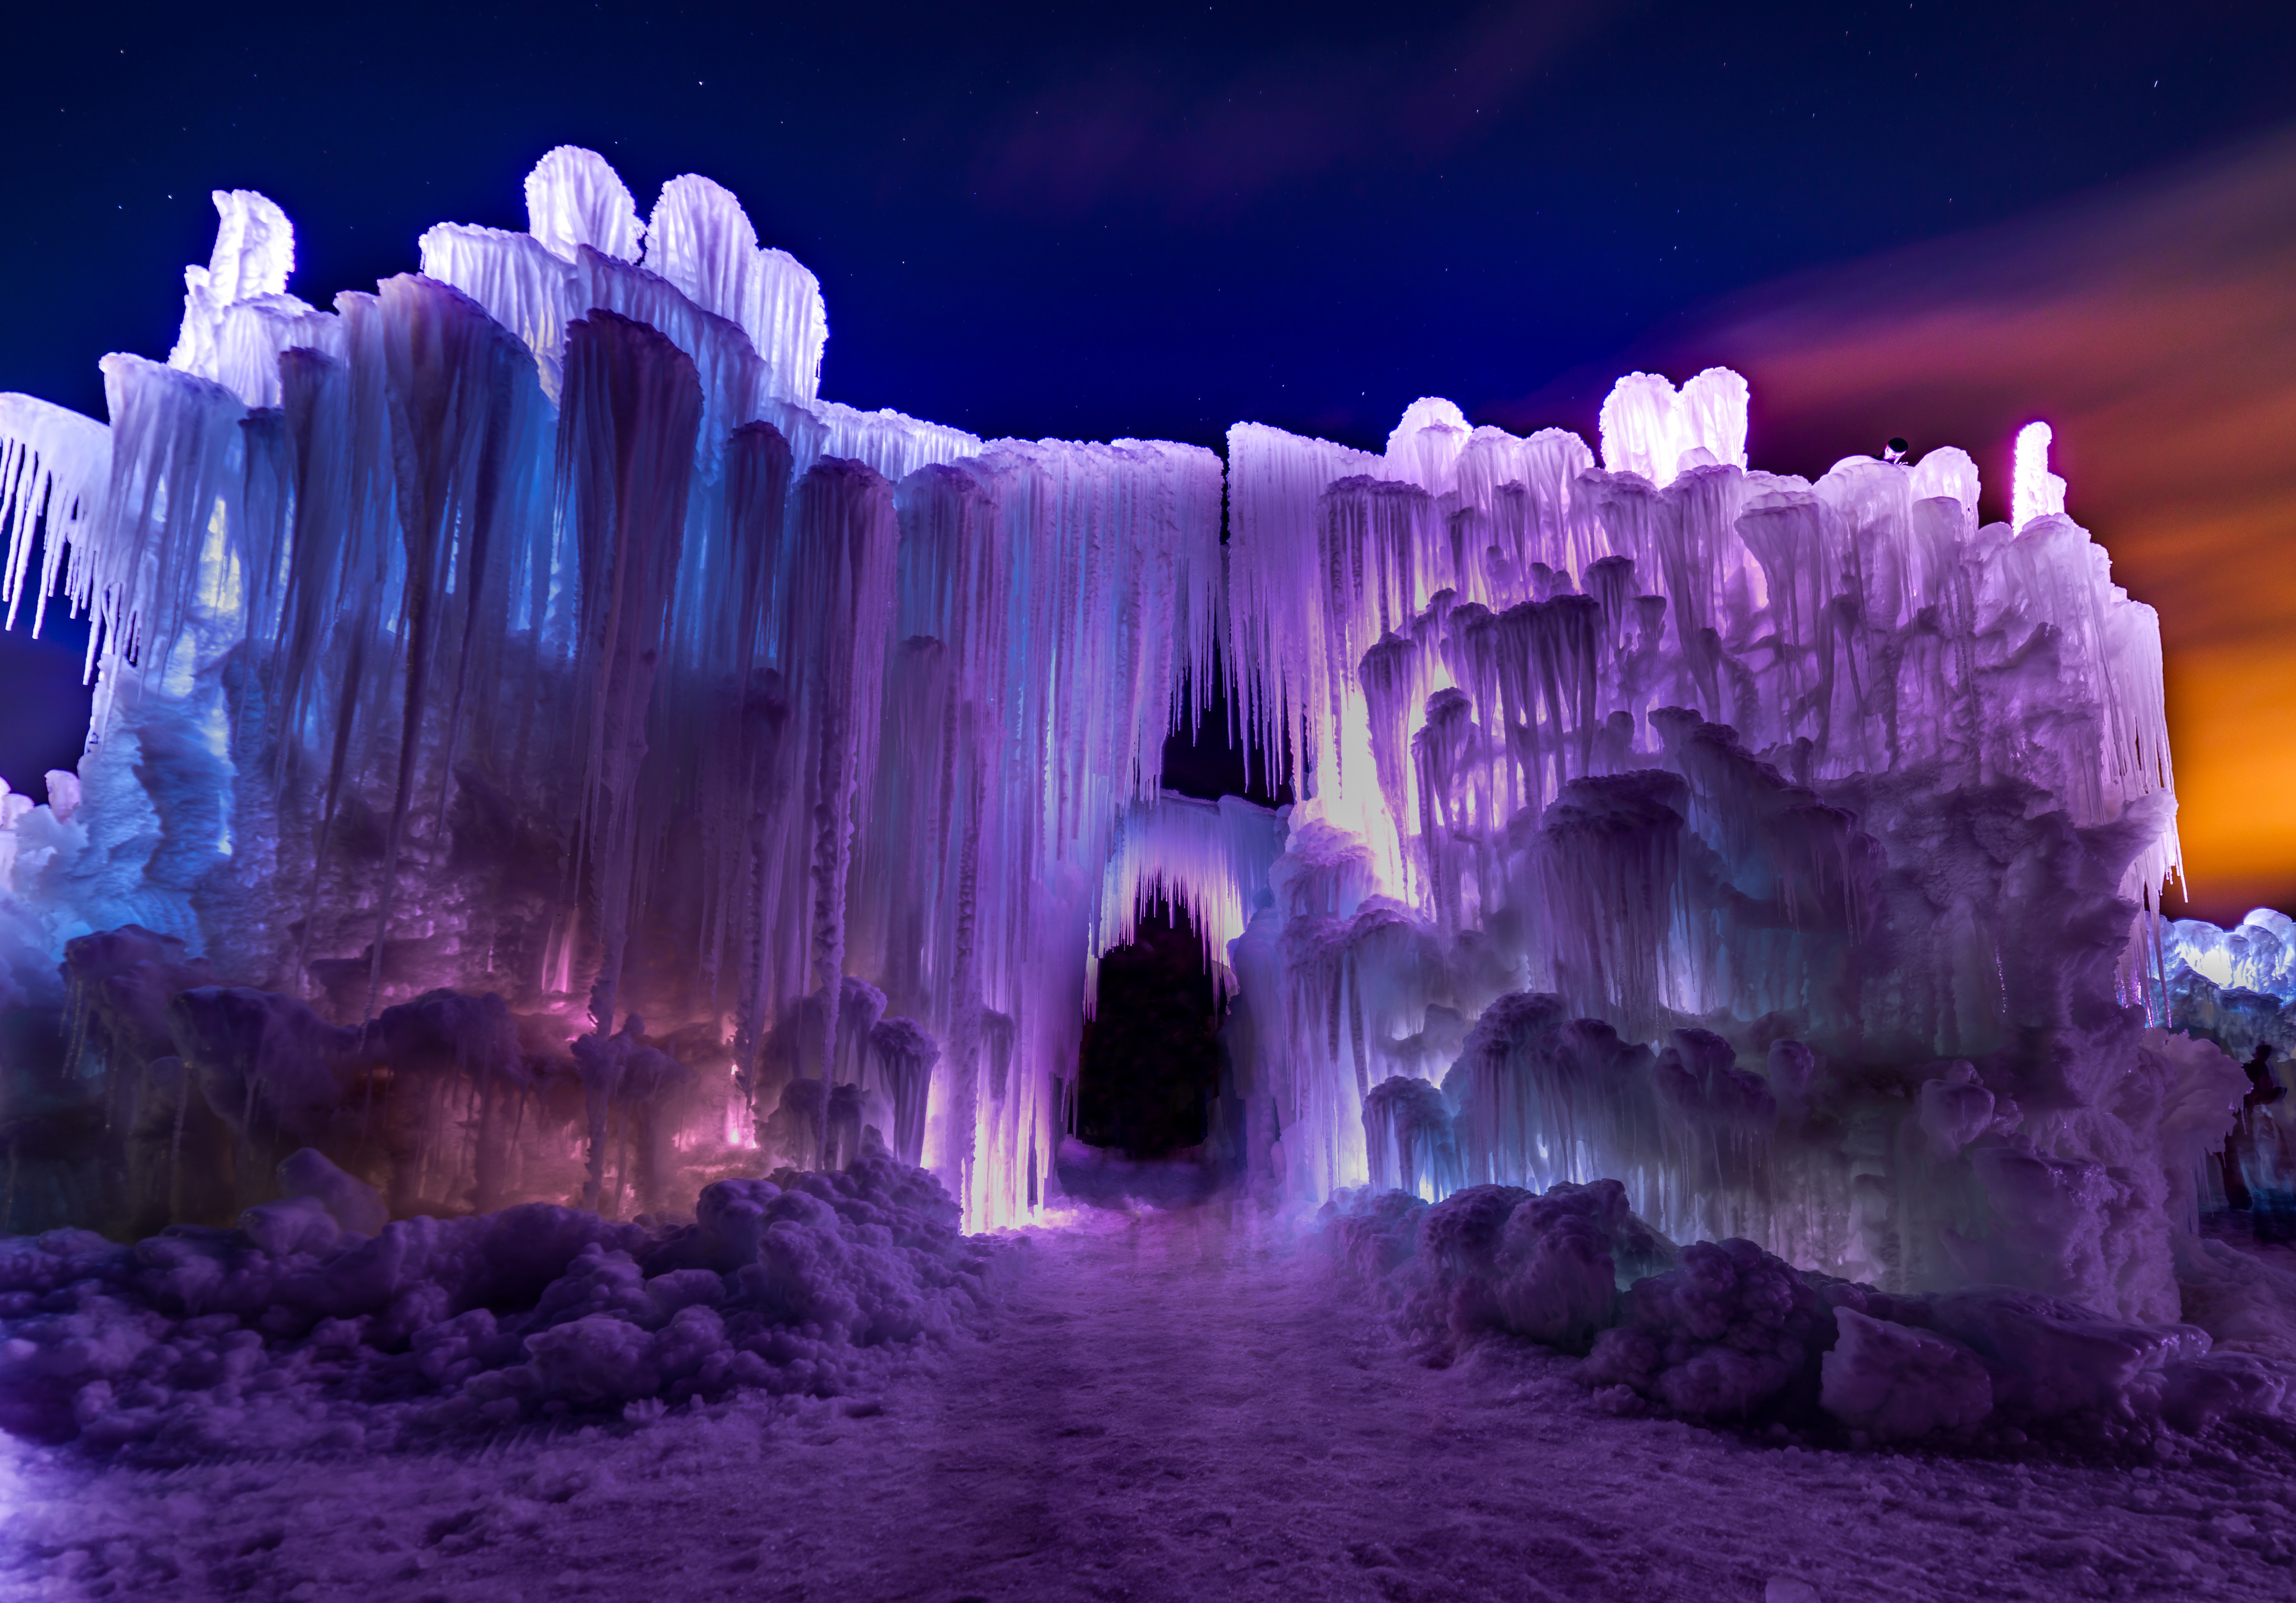 the midway utah ice castle features an amazing light show set to music at night - Open Castle 2016